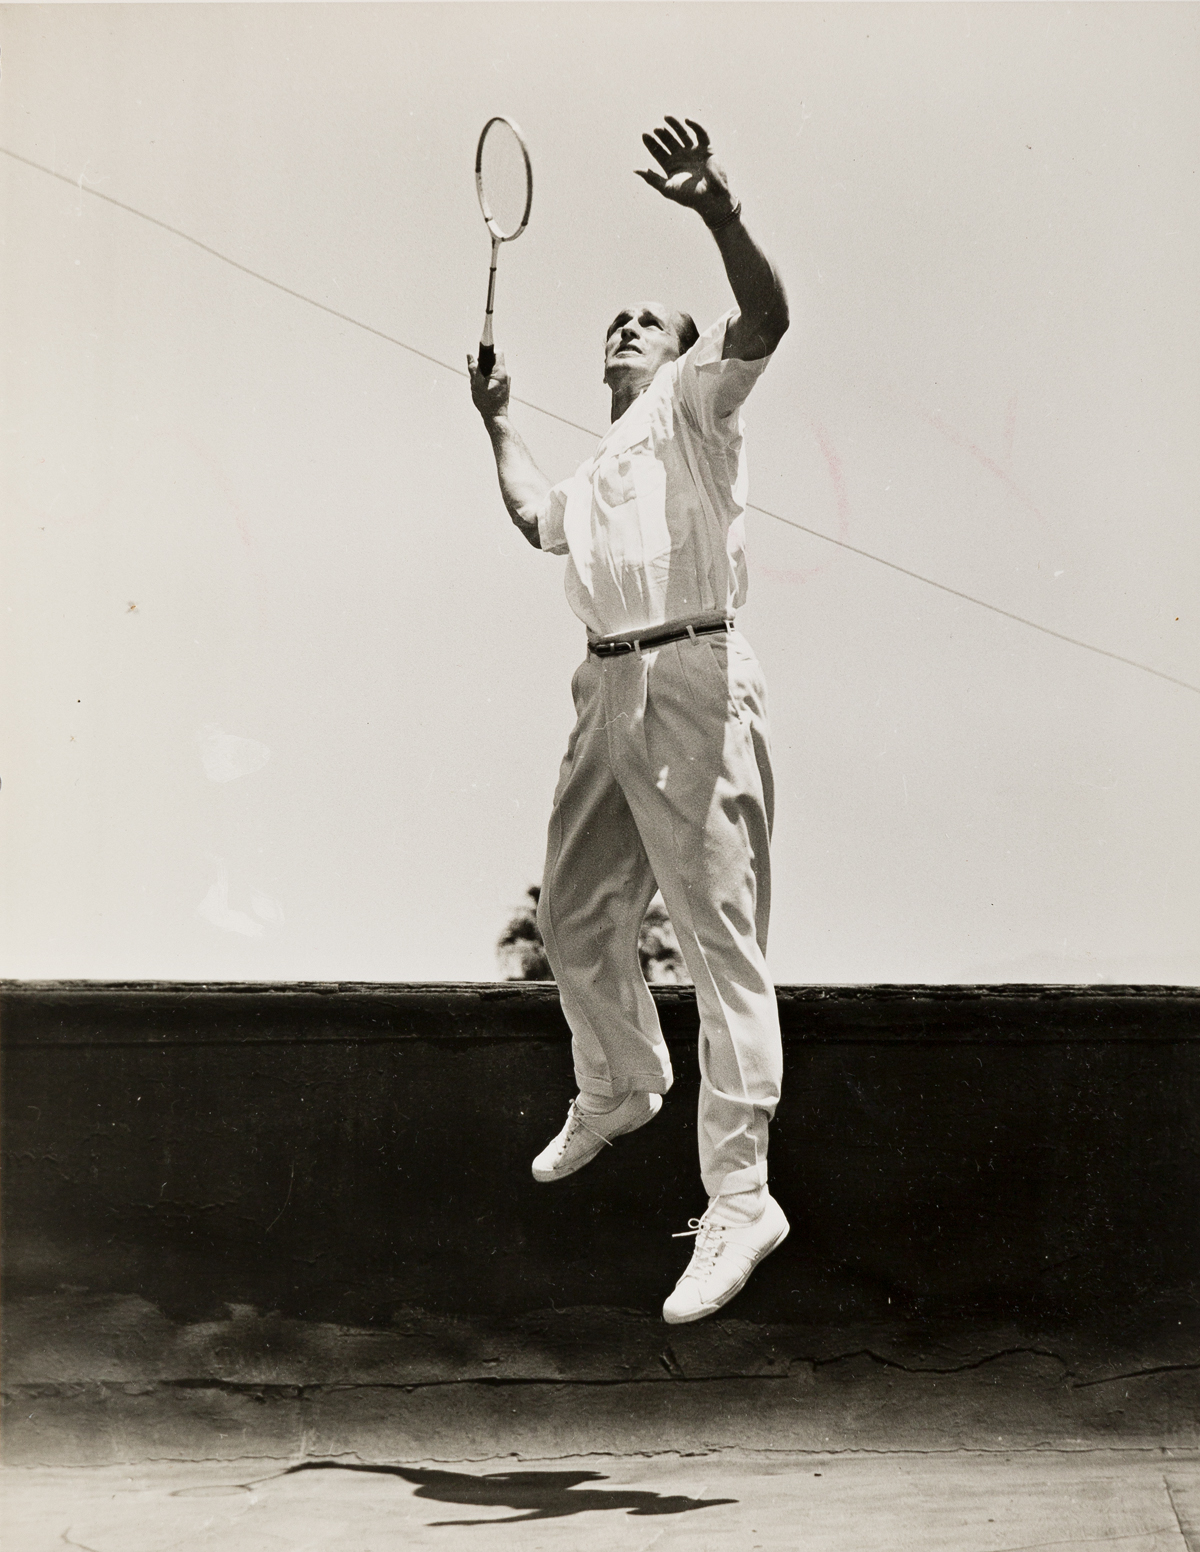 JACK PASHKOVSKY (1911-2001) A pair of photographs depicting tennis star Bill Tilden.